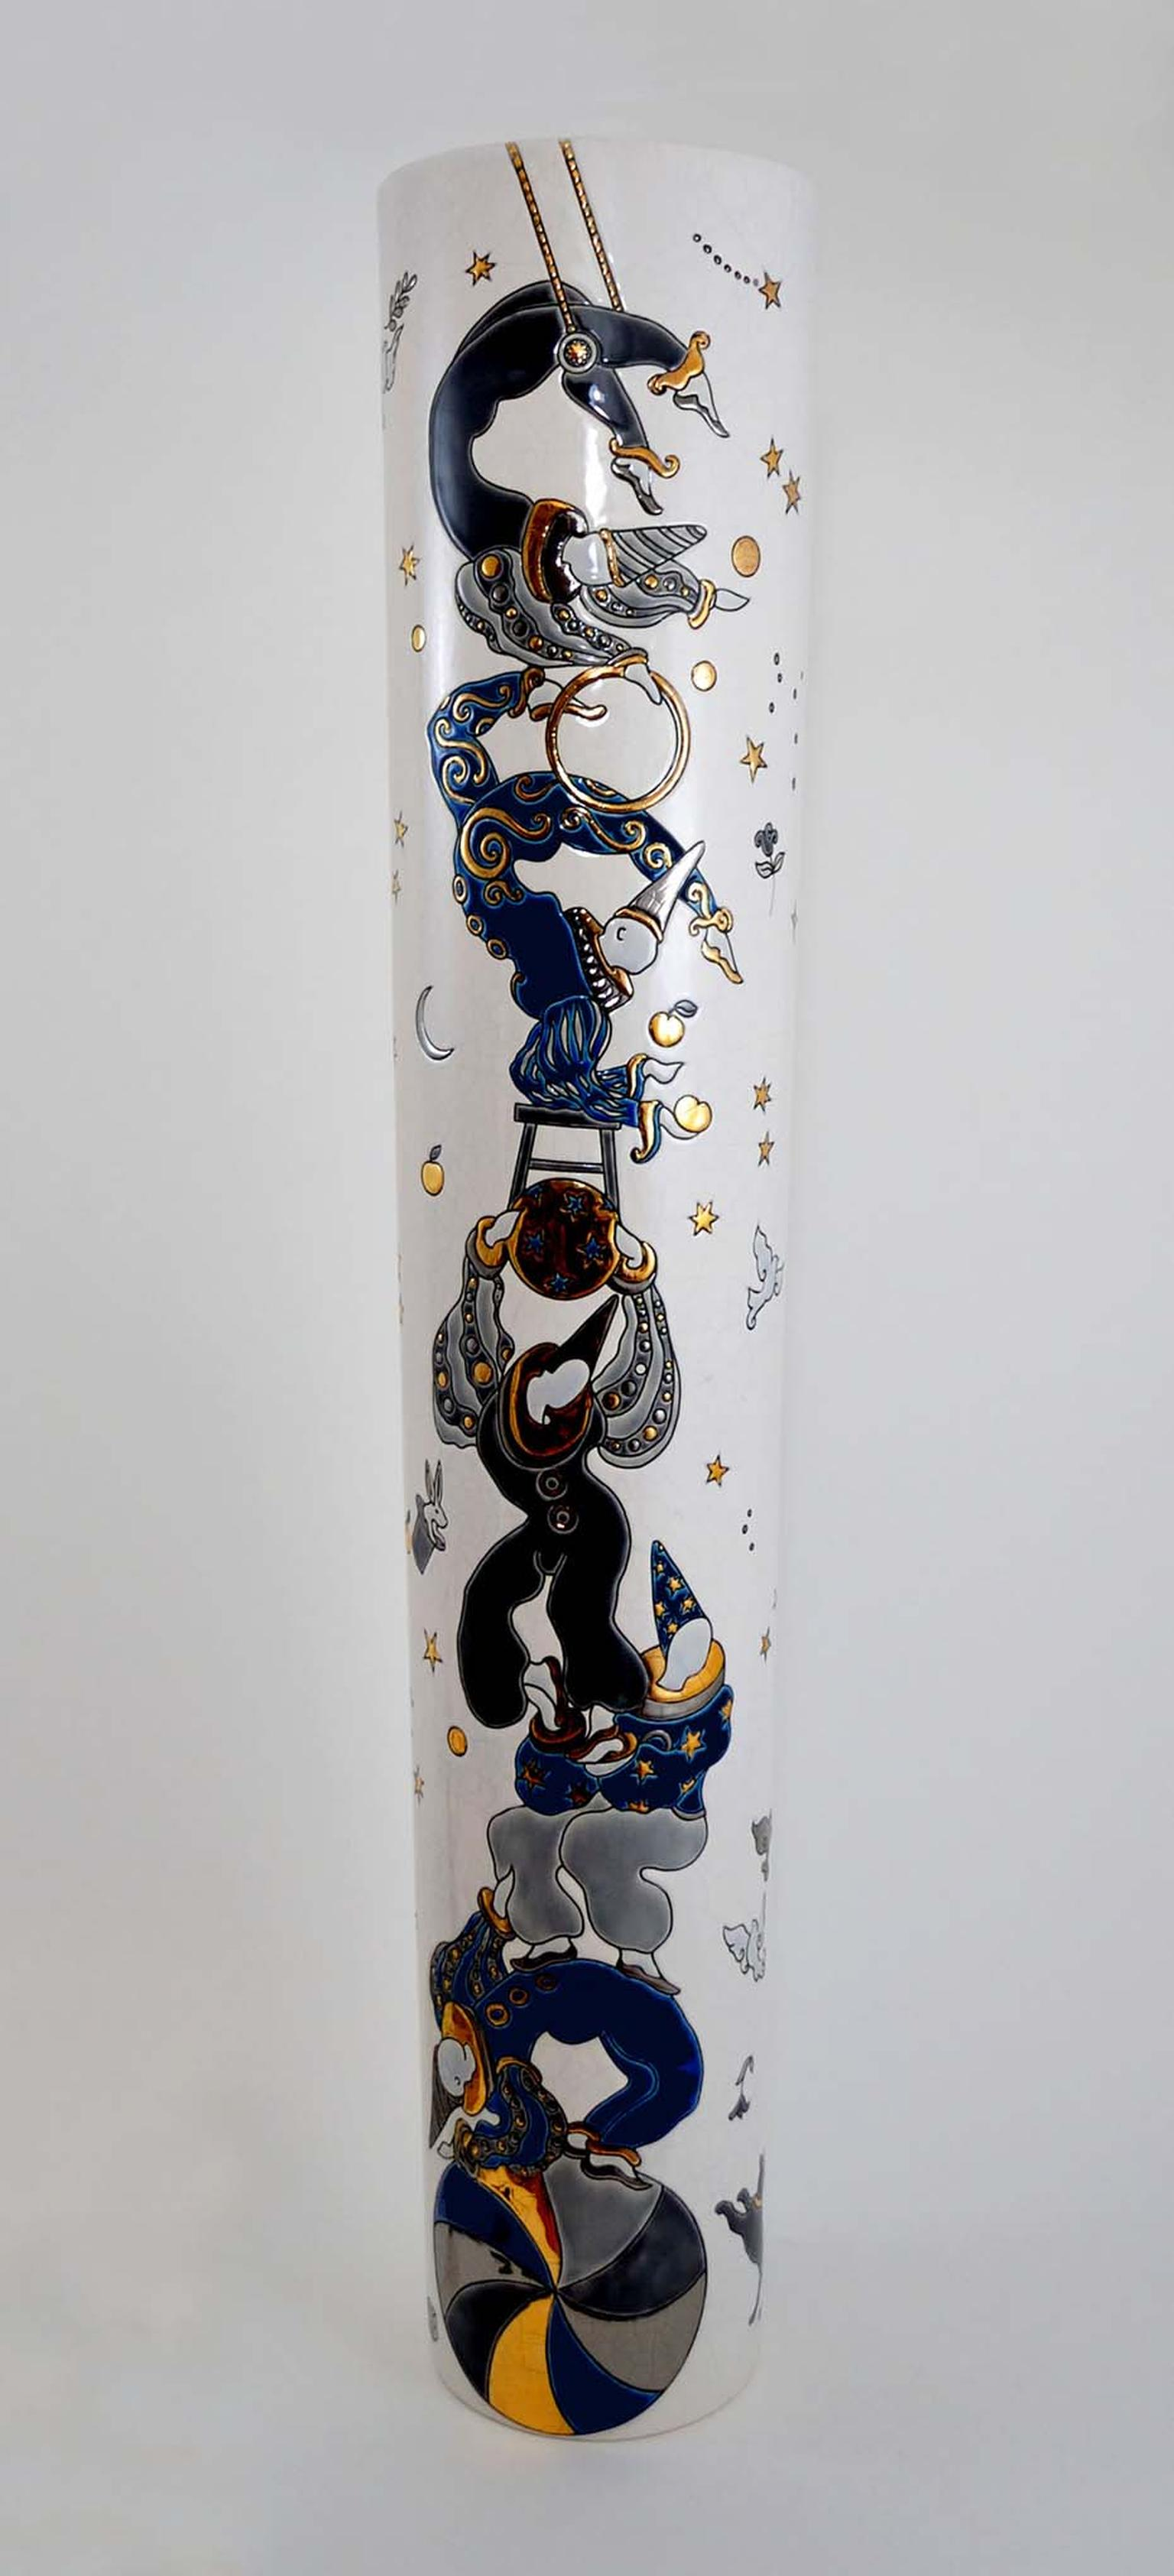 Jean Boggio Acrobates earthenware and enamel vases with platinum and gold come in a limited edition of 100, all signed and numbered.